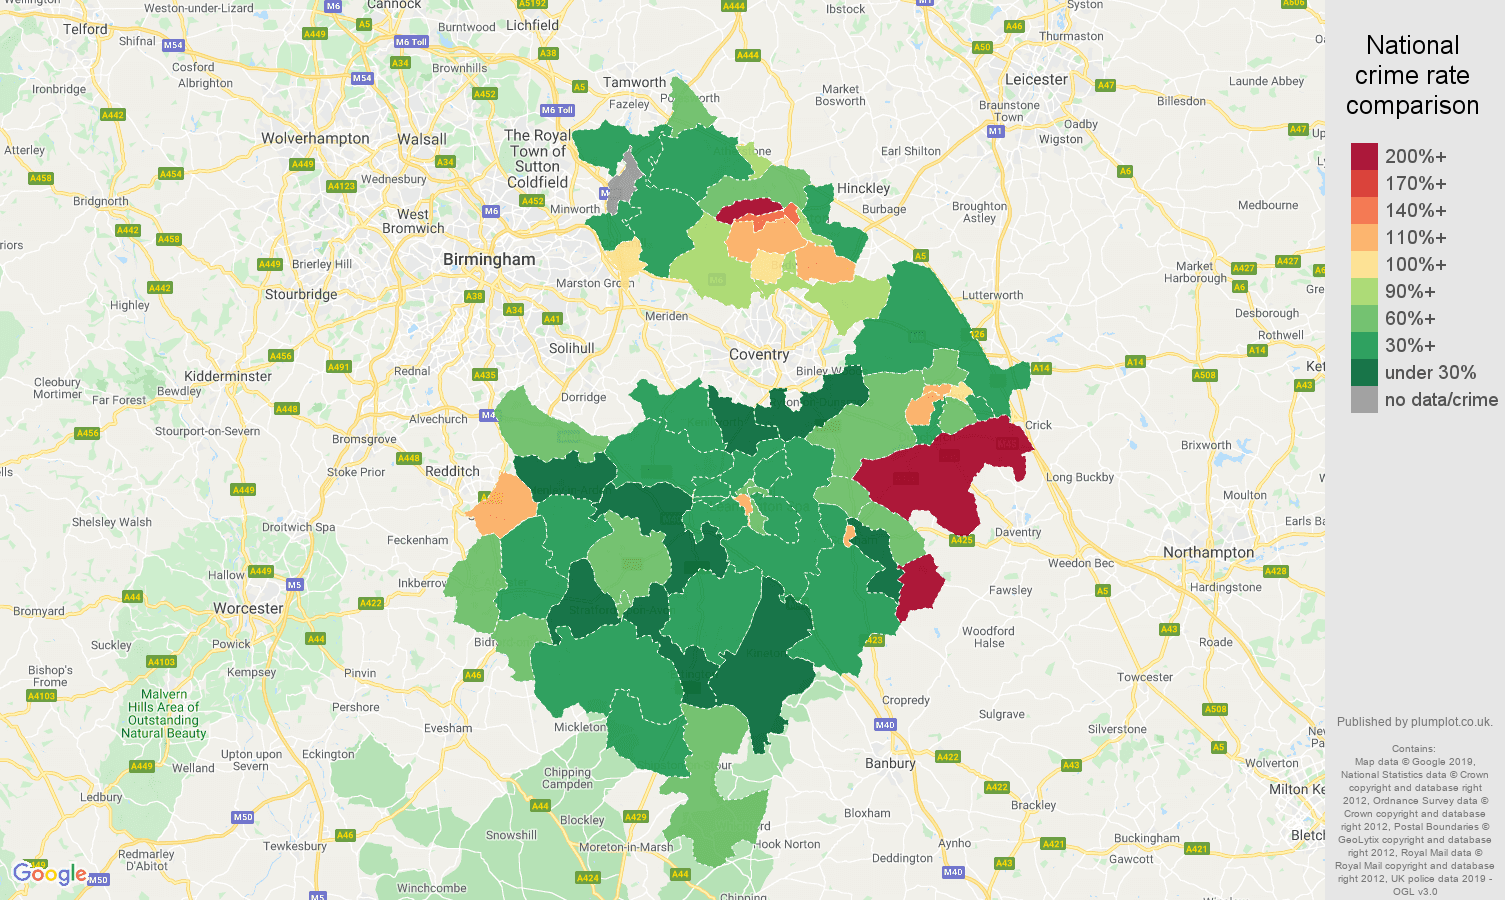 Warwickshire other crime rate comparison map